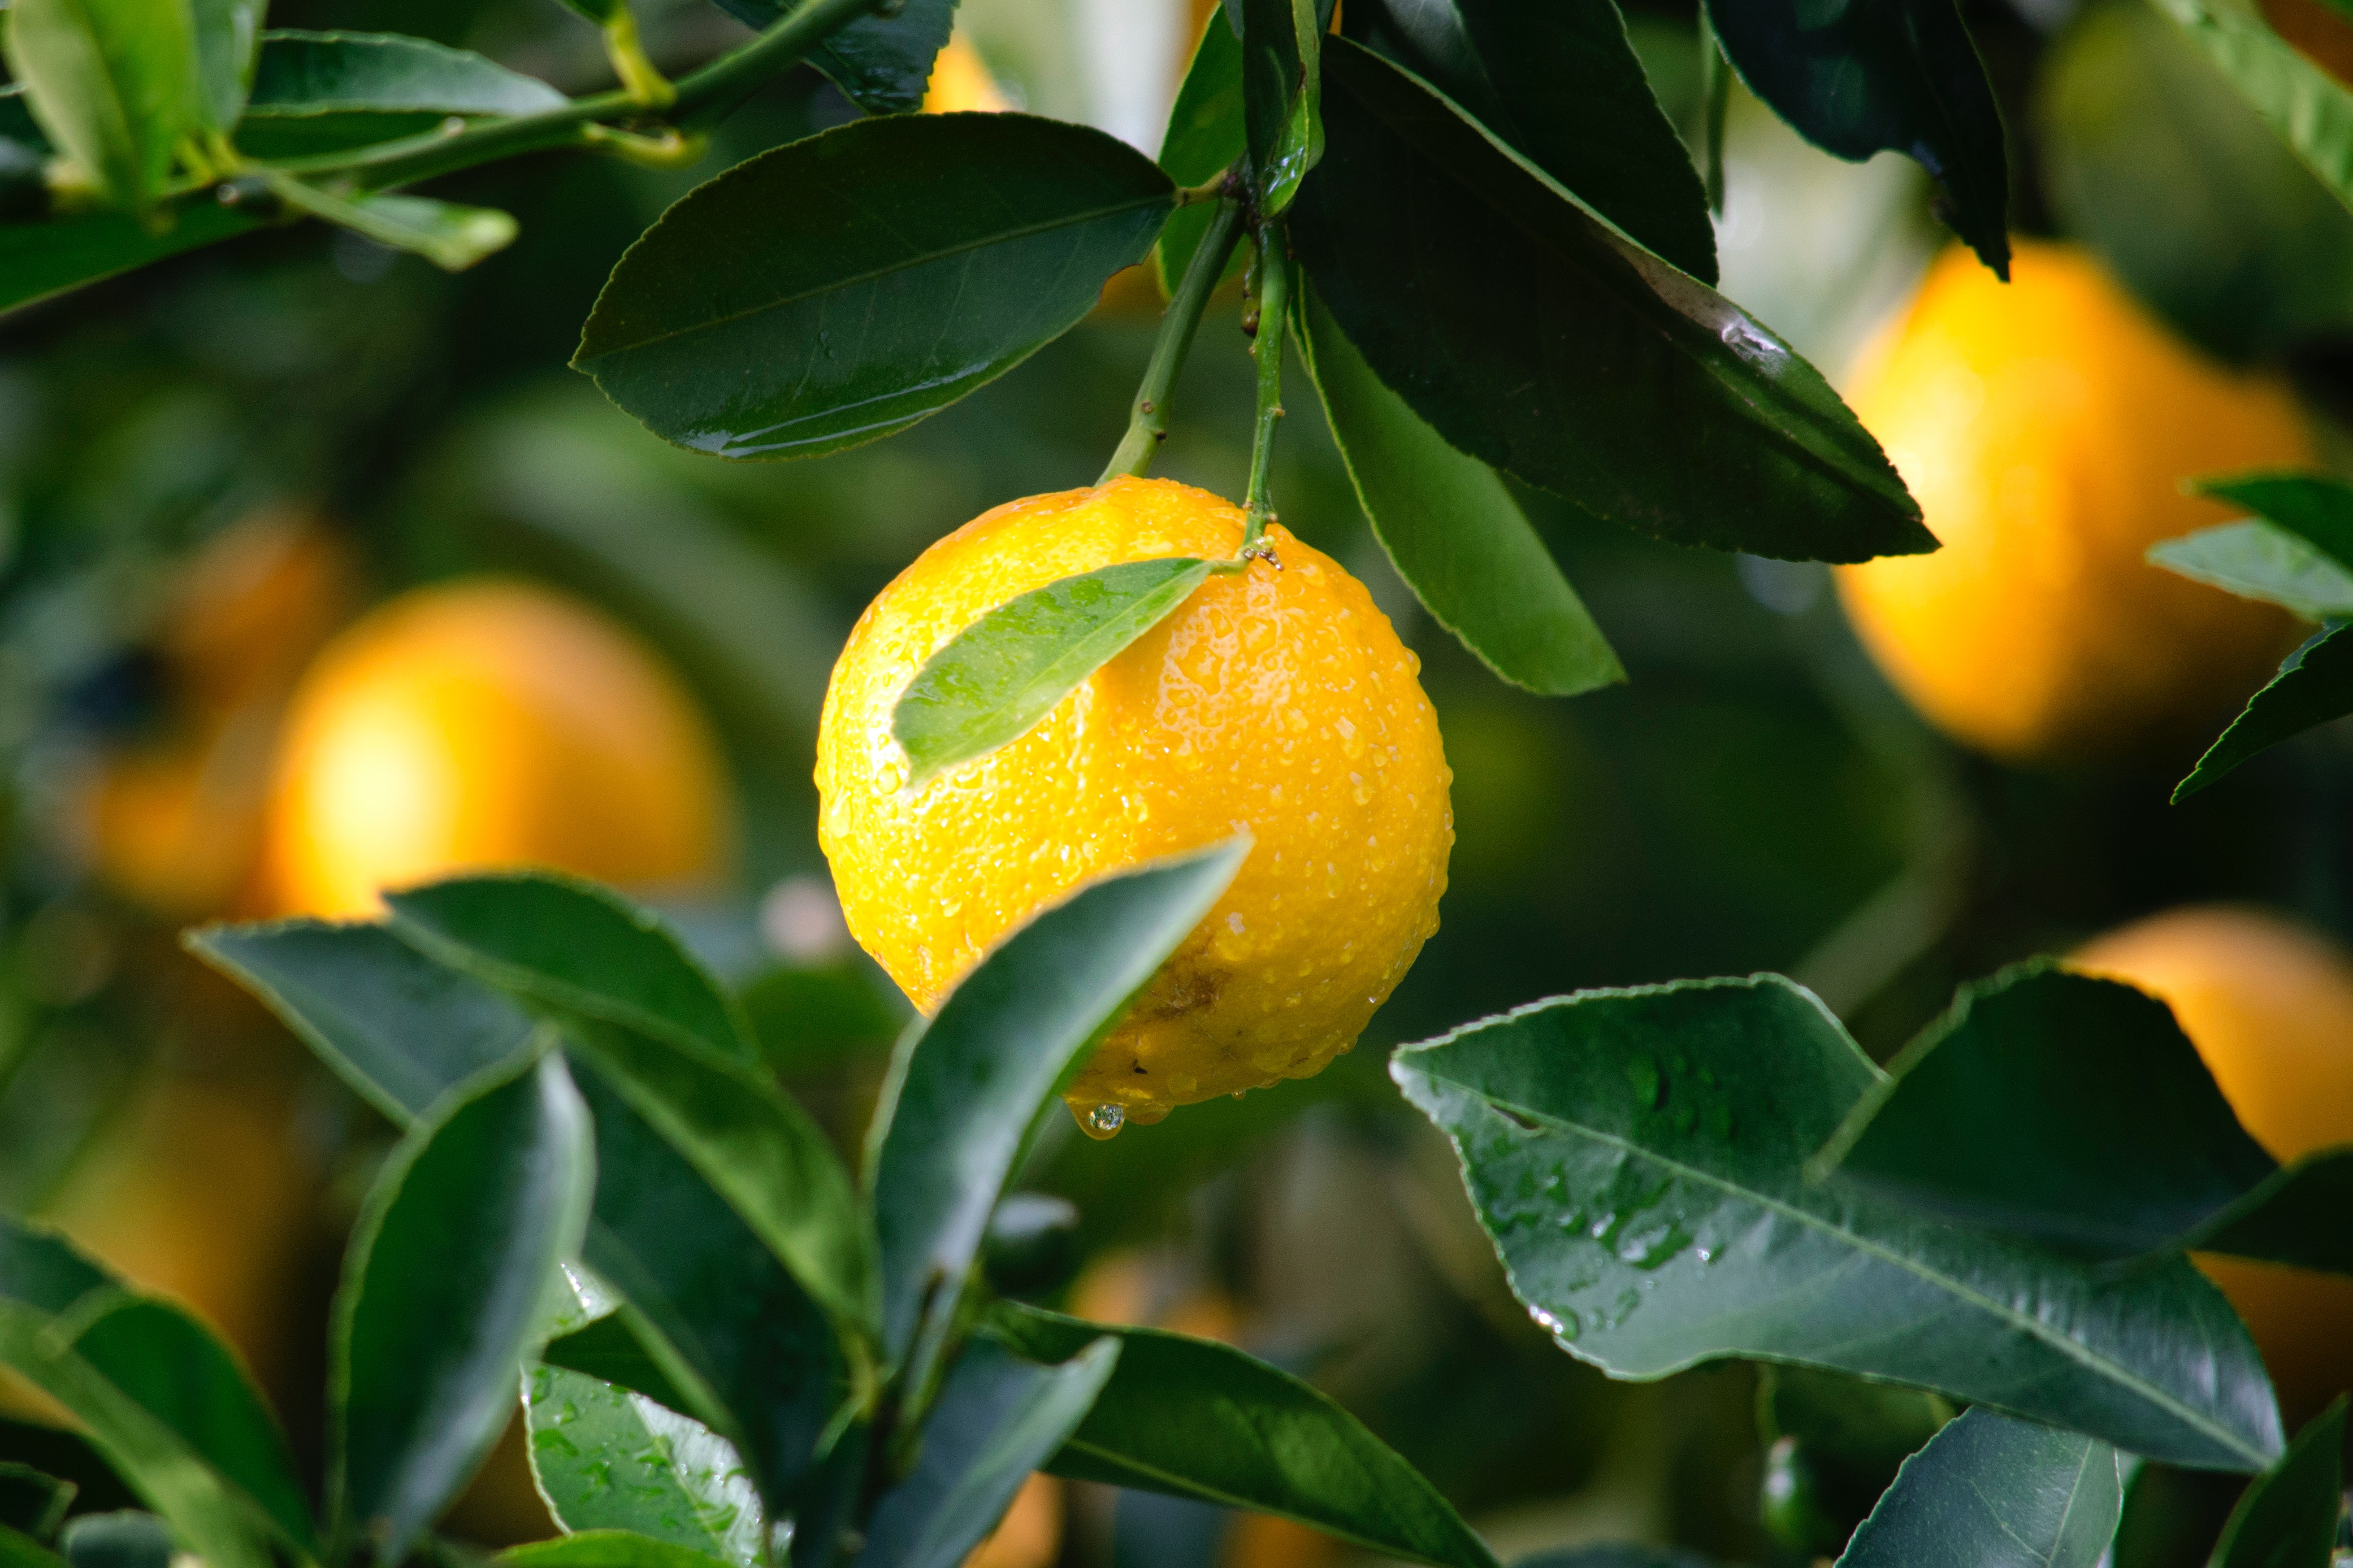 Upcycling citrus and tomato biomass for high value applications  [webinar]